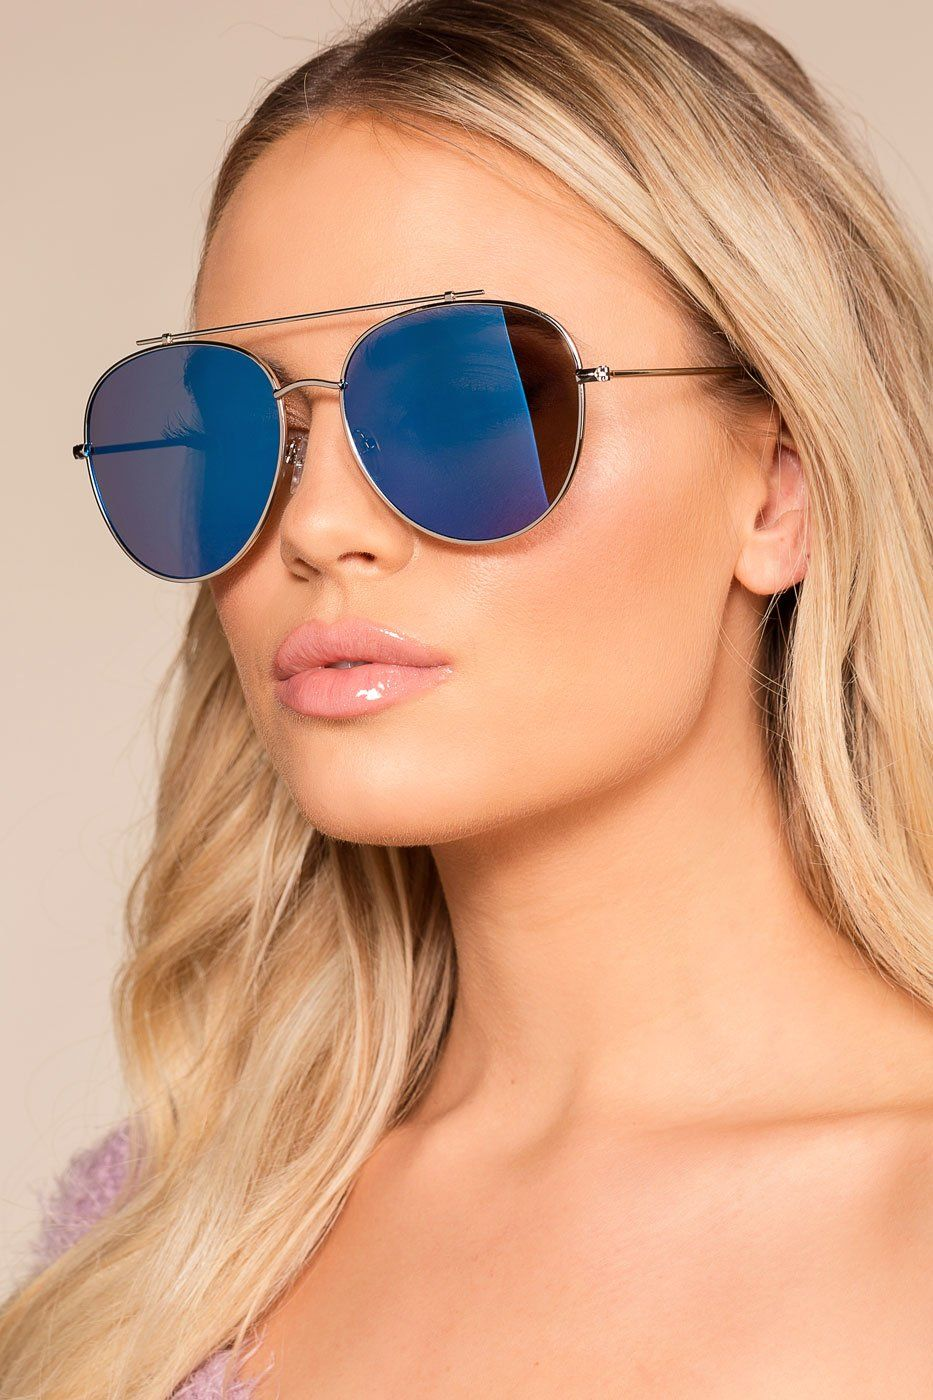 ... Blue Mirrored Aviator Sunglasses. 1  2 9d545a0db31